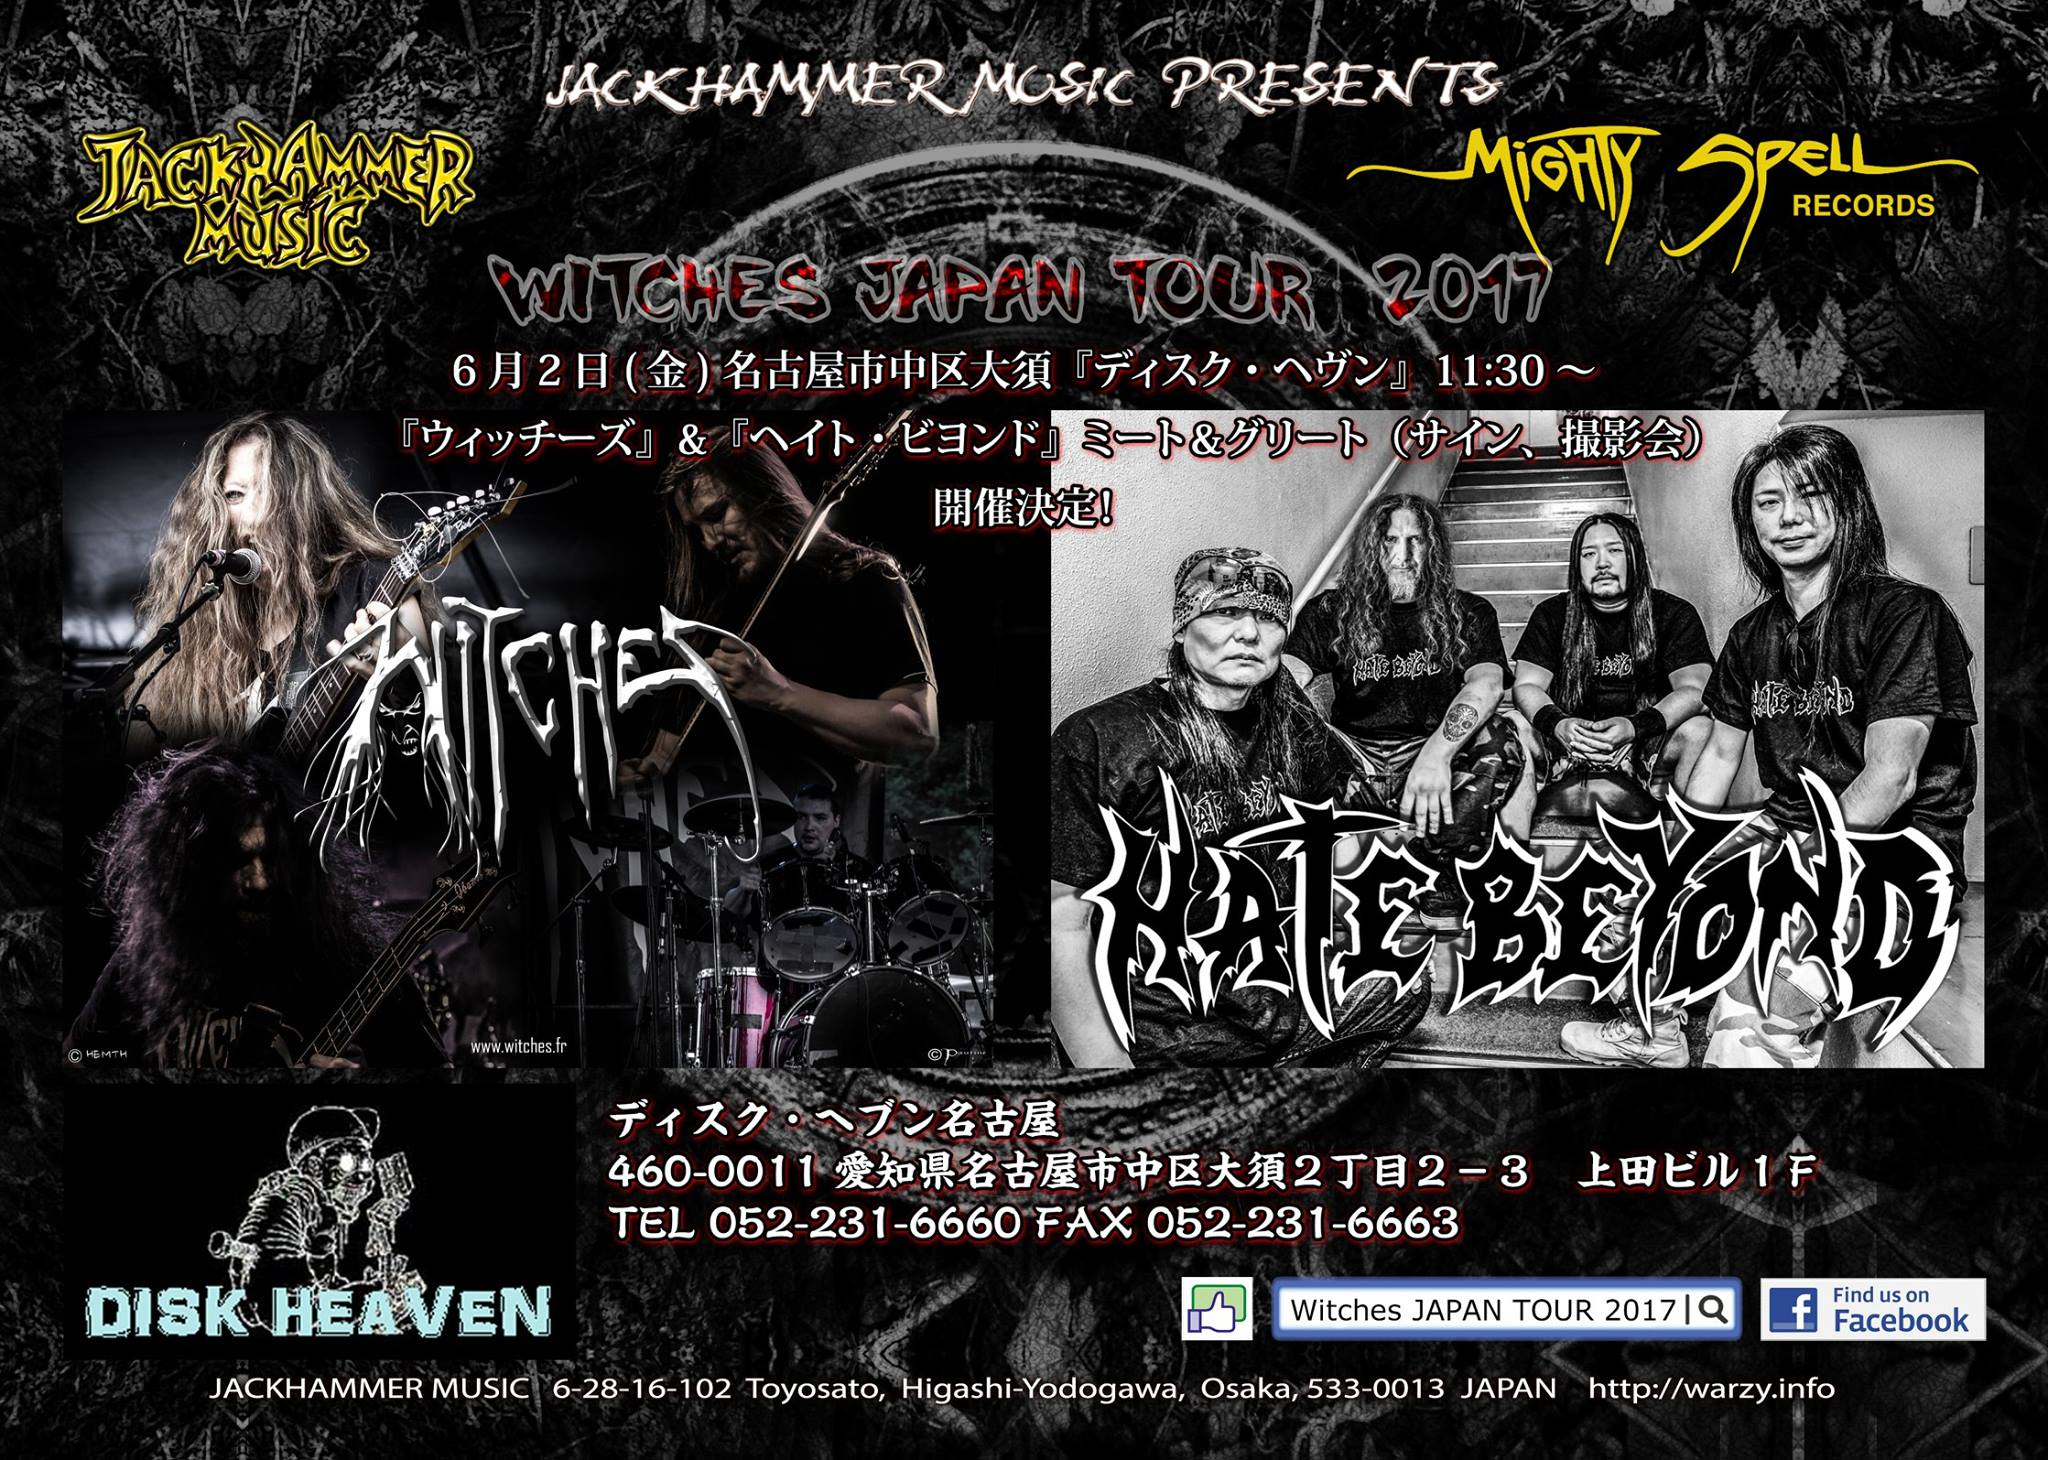 Witches flyer WITCHES and HATE BEYOND Autograph & photo session etc... at DISK HEAVEN NAGOYA!! @ Meet & greet at